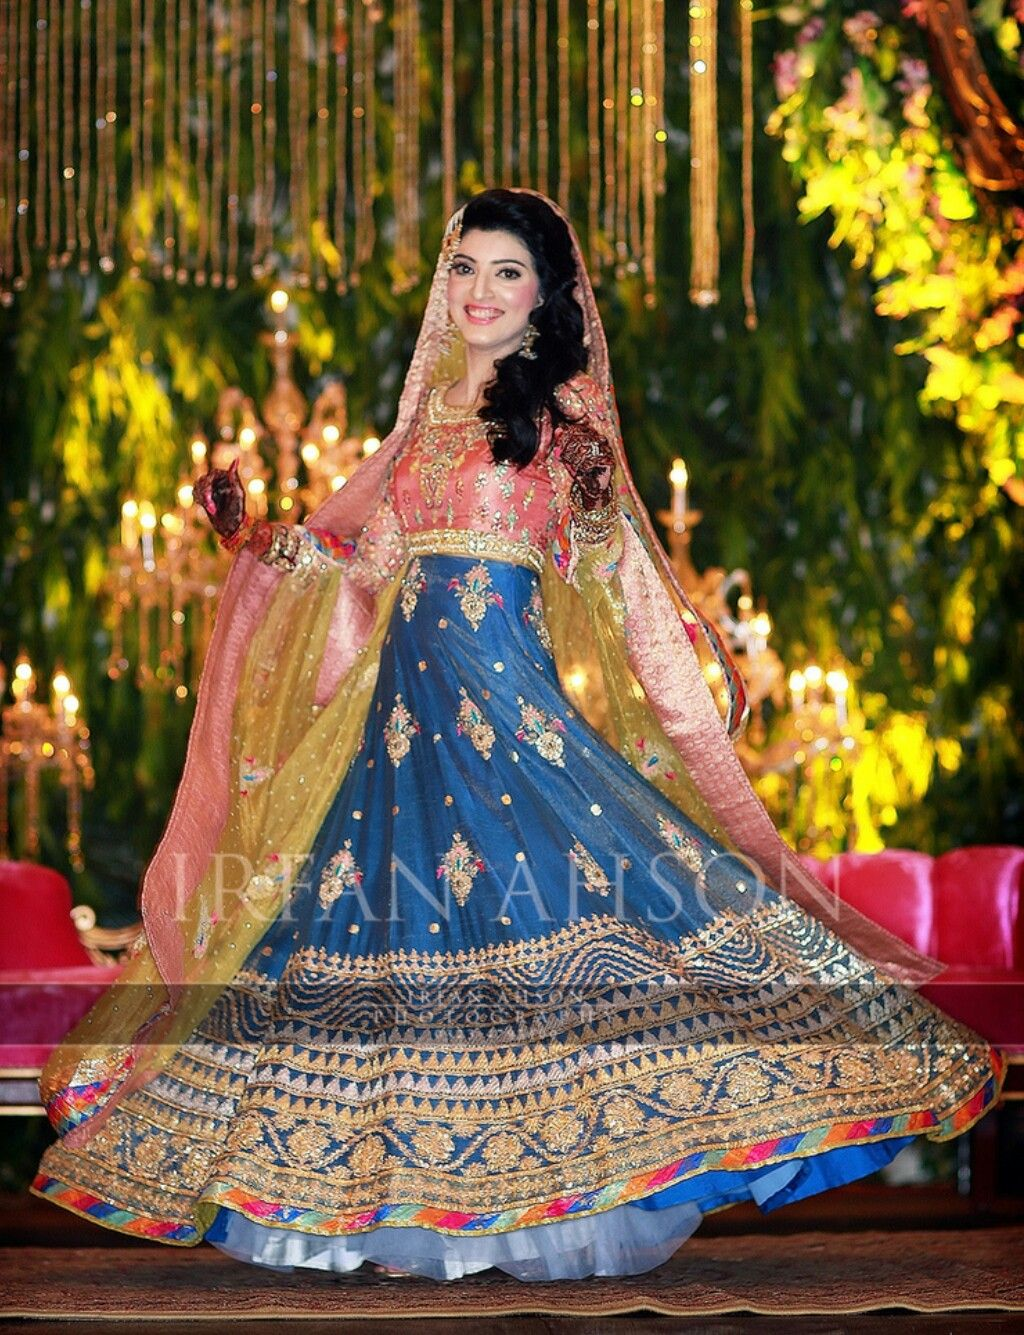 Pin von samreen auf pakistani bridal wear and formal dresses | Pinterest